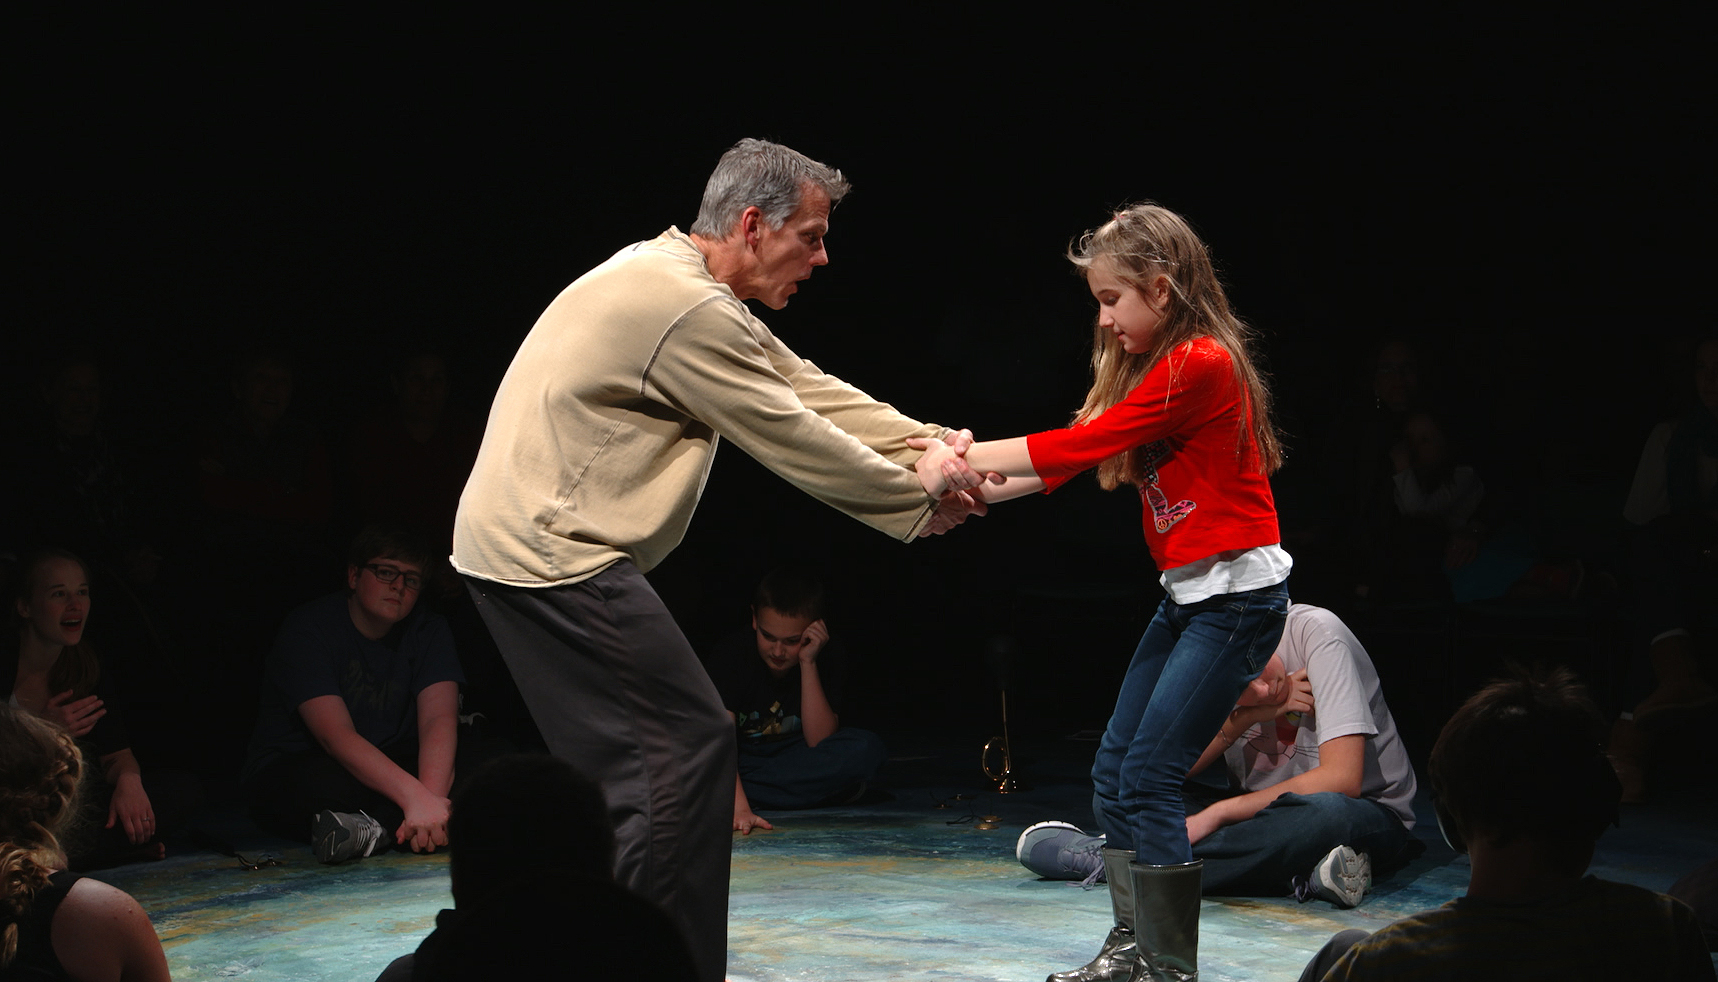 An actor and child with ASD act out a scene from The Tempest